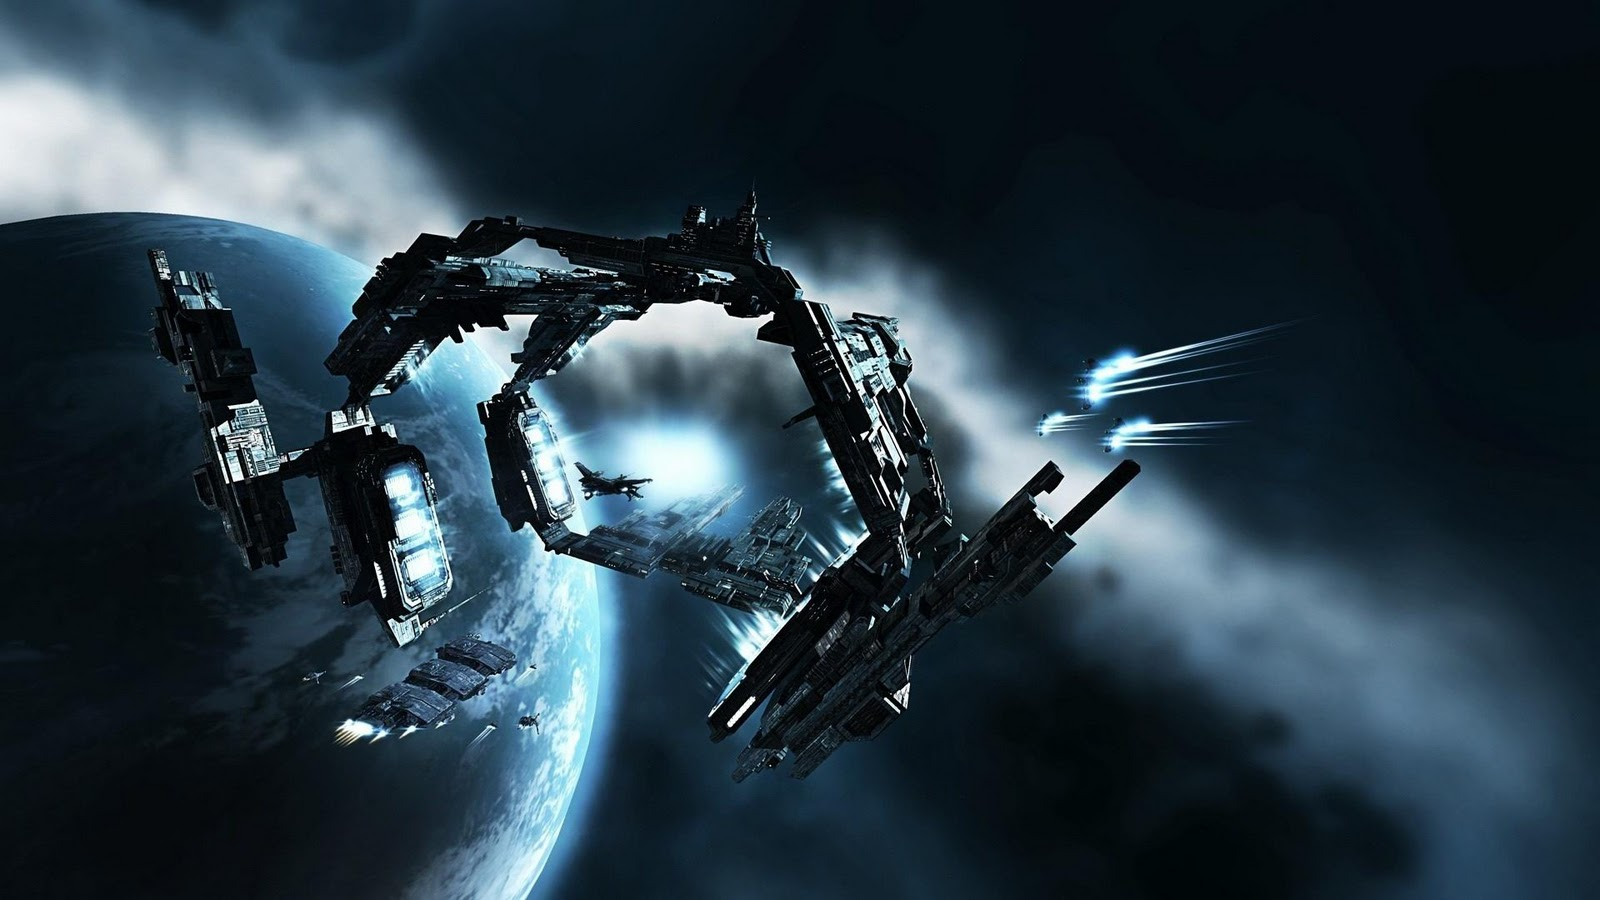 Space 3d Wallpaper For Desktop iPad HD D Space Widescreen Desktop Wallpaper